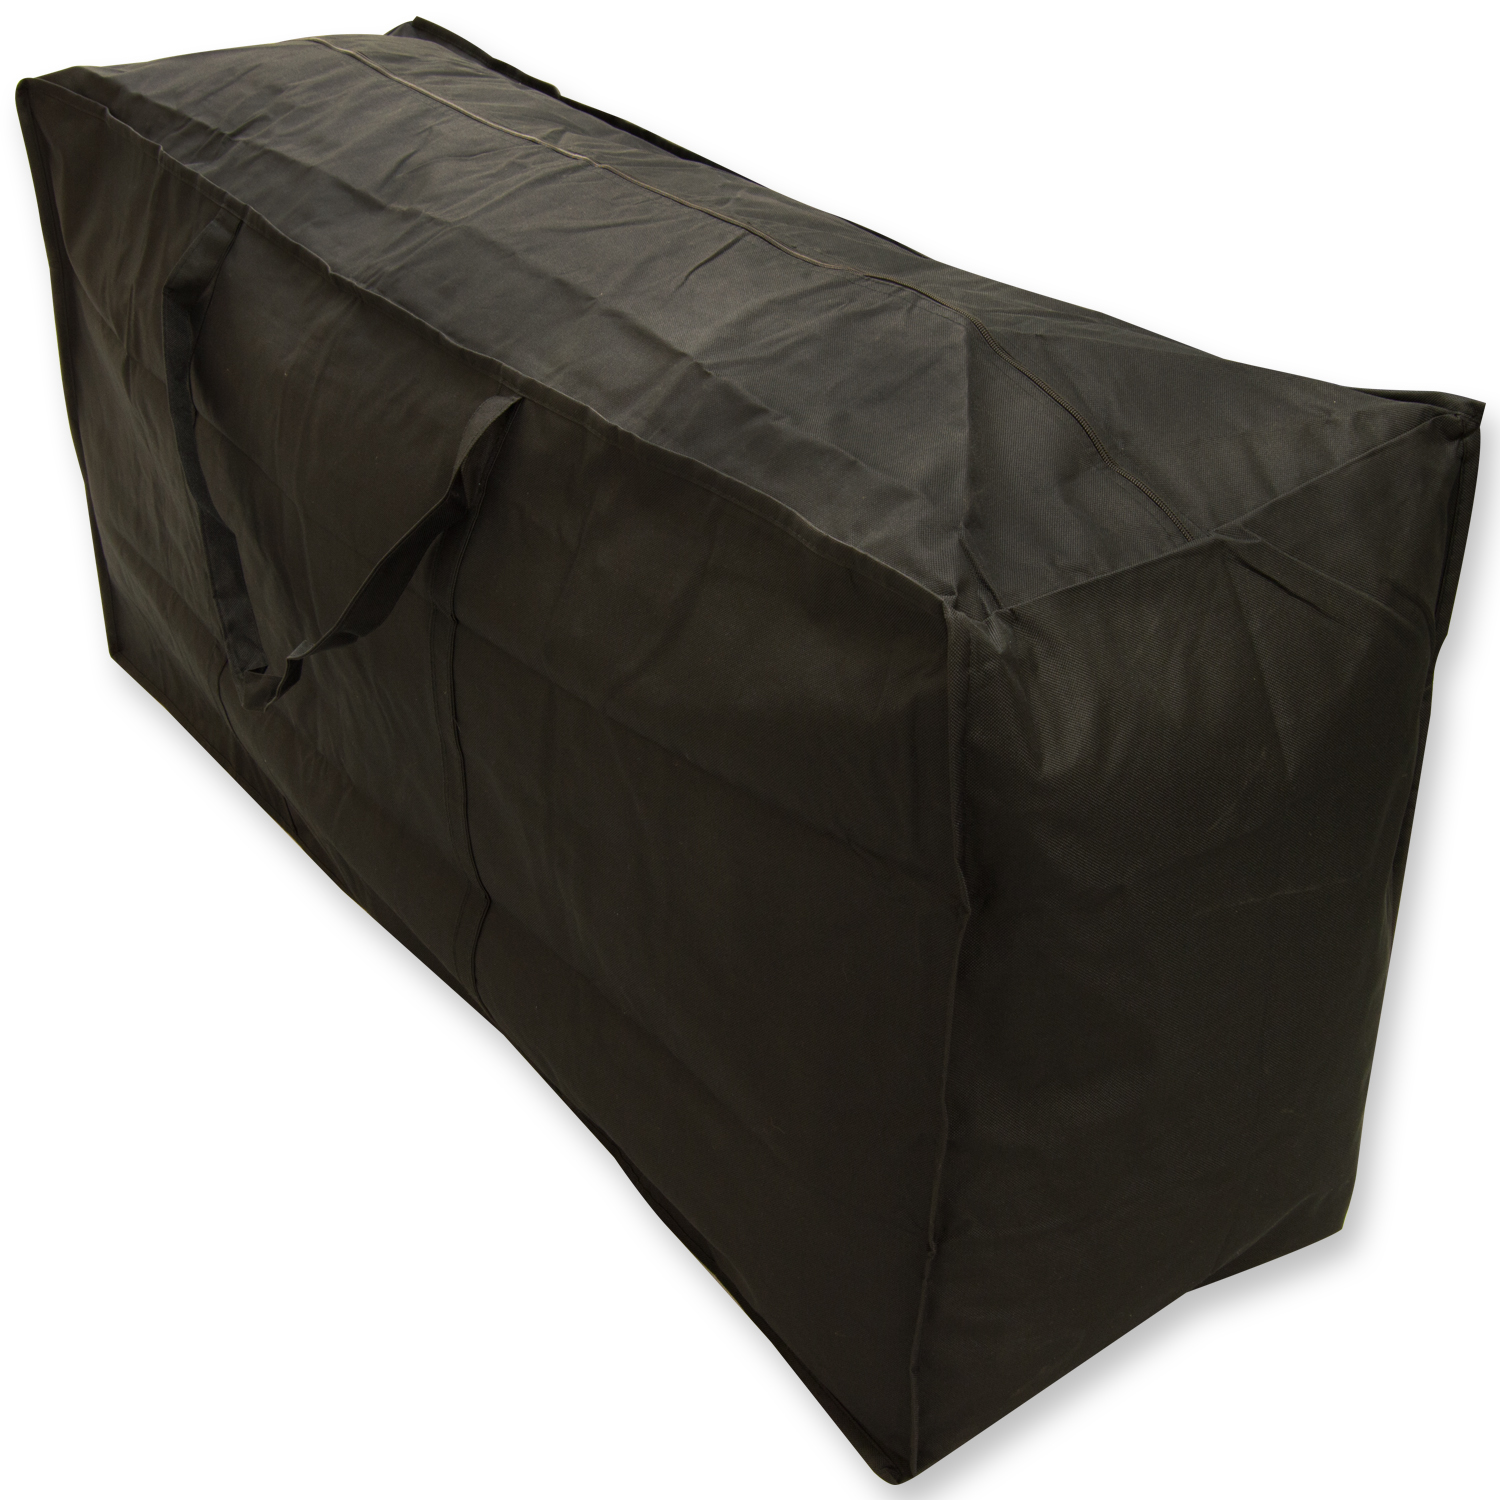 Woodside Furniture Cushion Storage Bag BLACK Covers